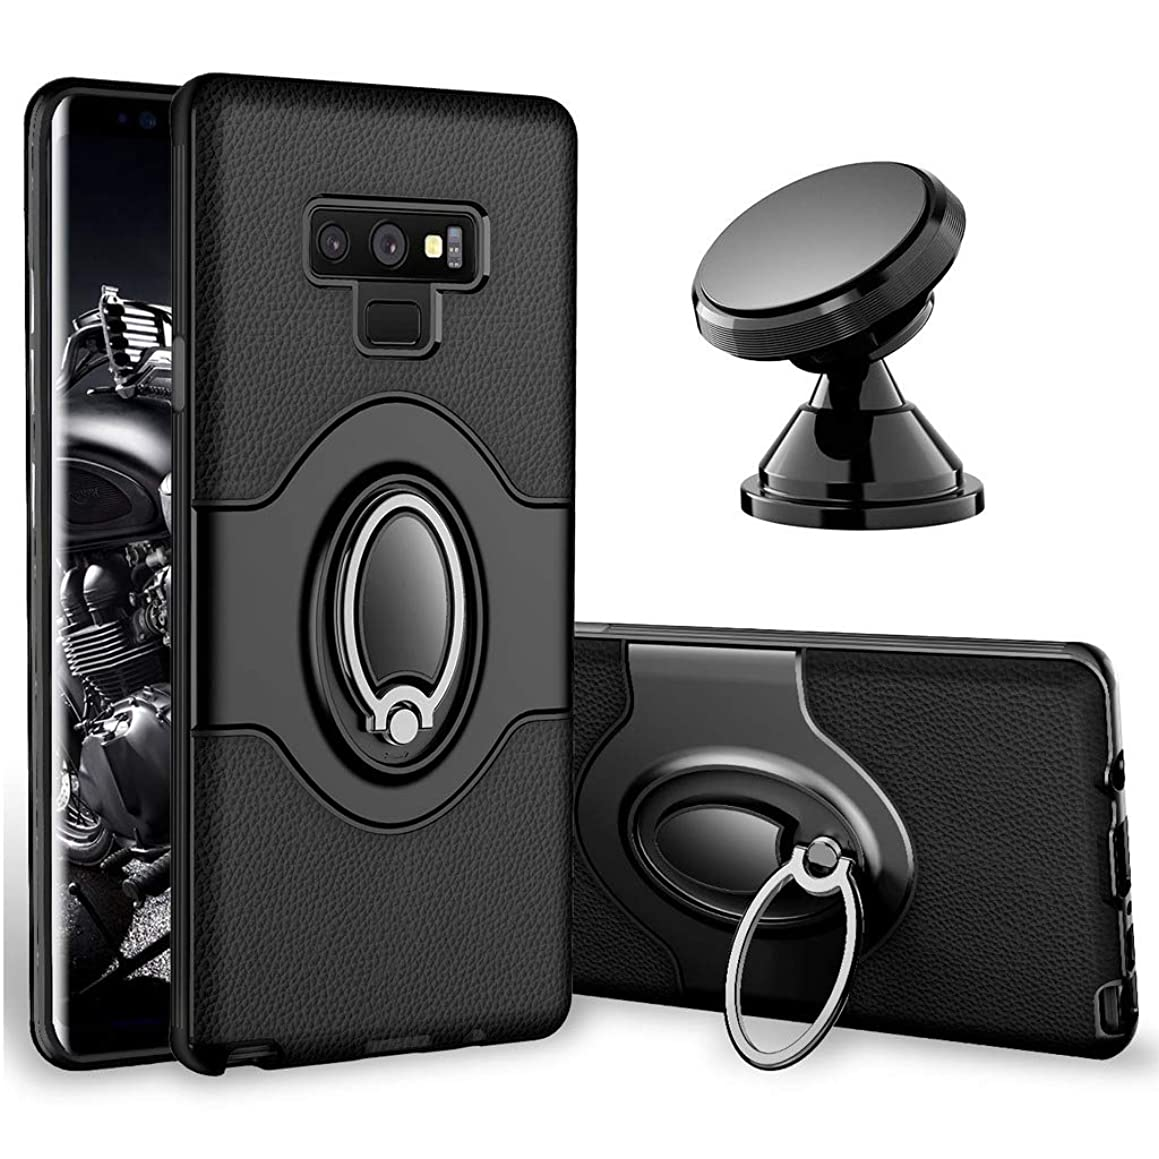 Samsung Galaxy Note 9 Case - eSamcore Ring Holder Kickstand Cases + Dashboard Magnetic Phone Car Mount [Black] q39639618630